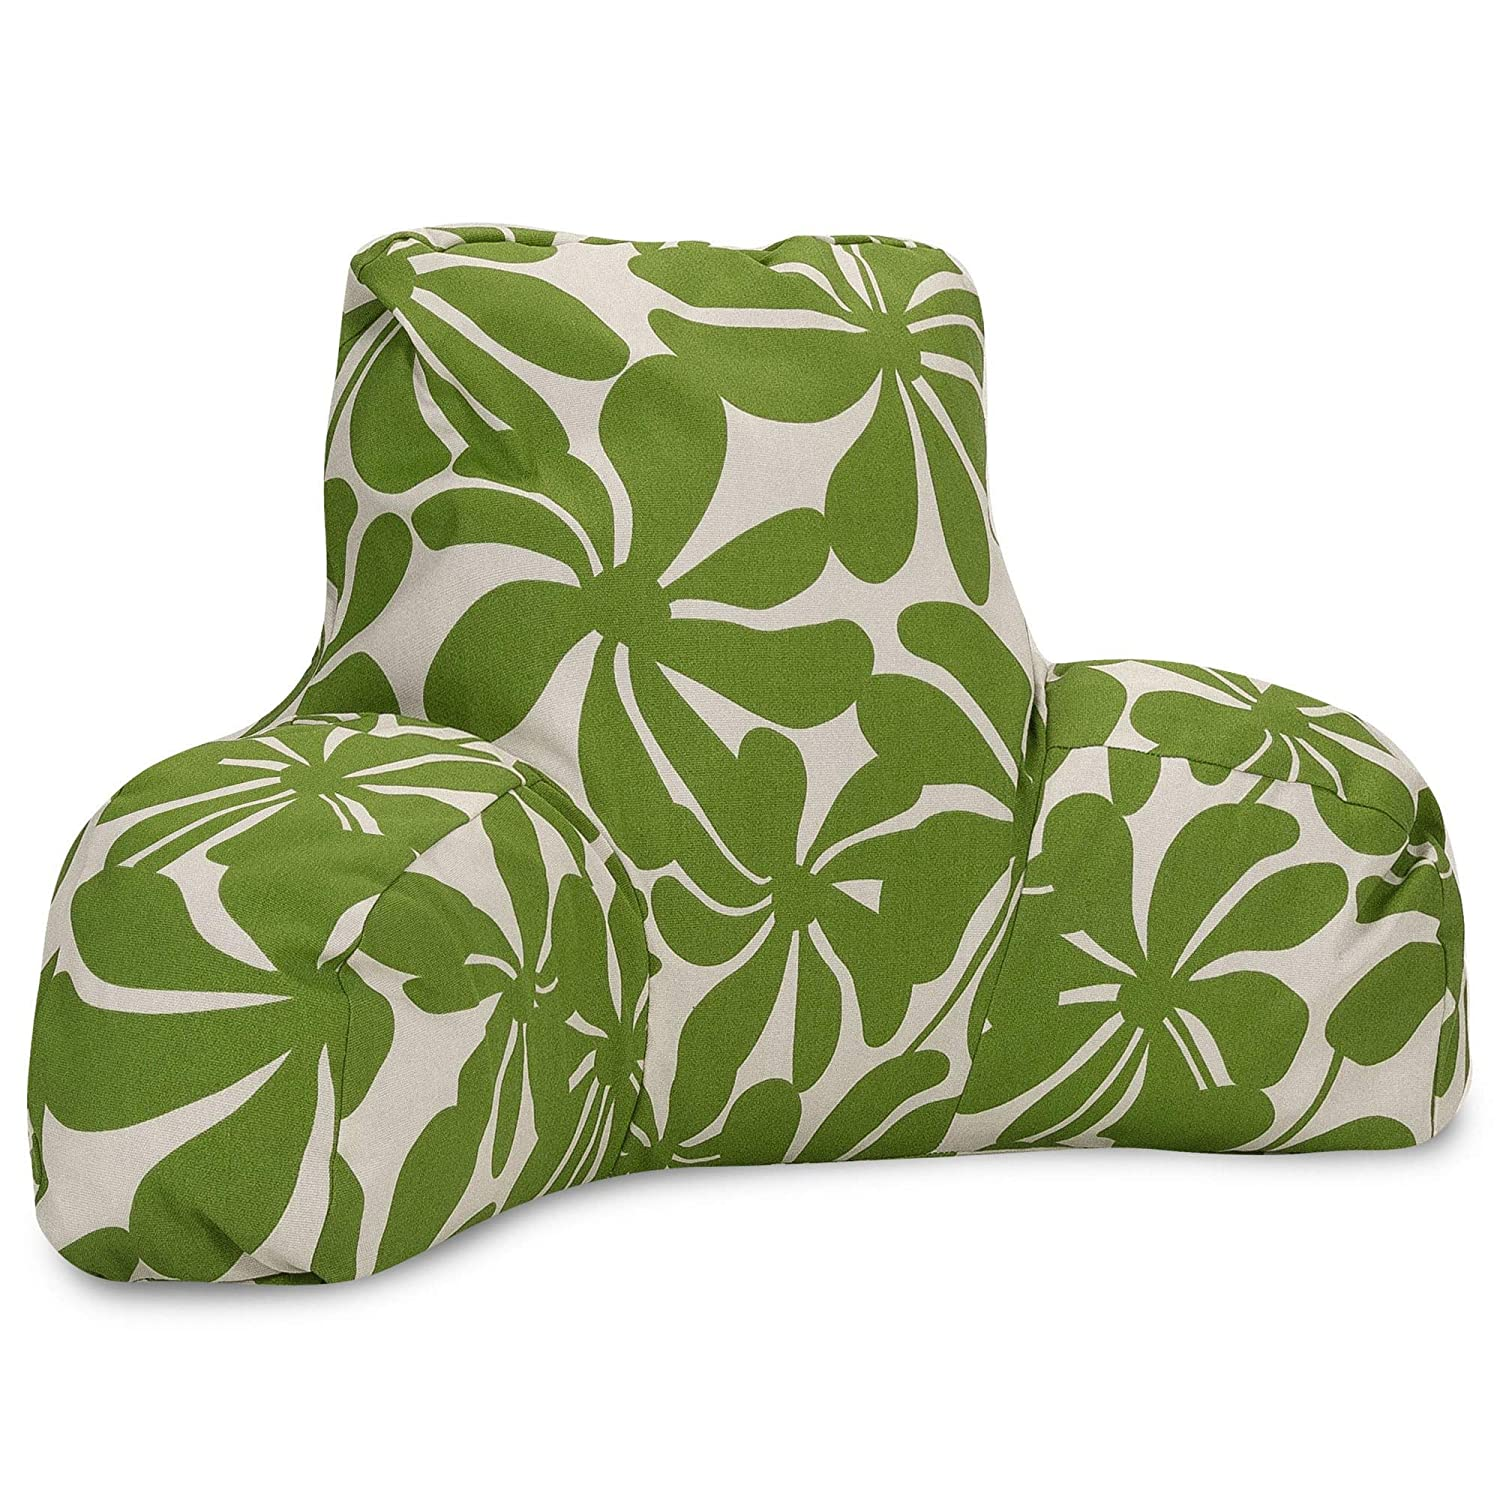 Majestic Home Goods Plantation Reading Pillow, Sage